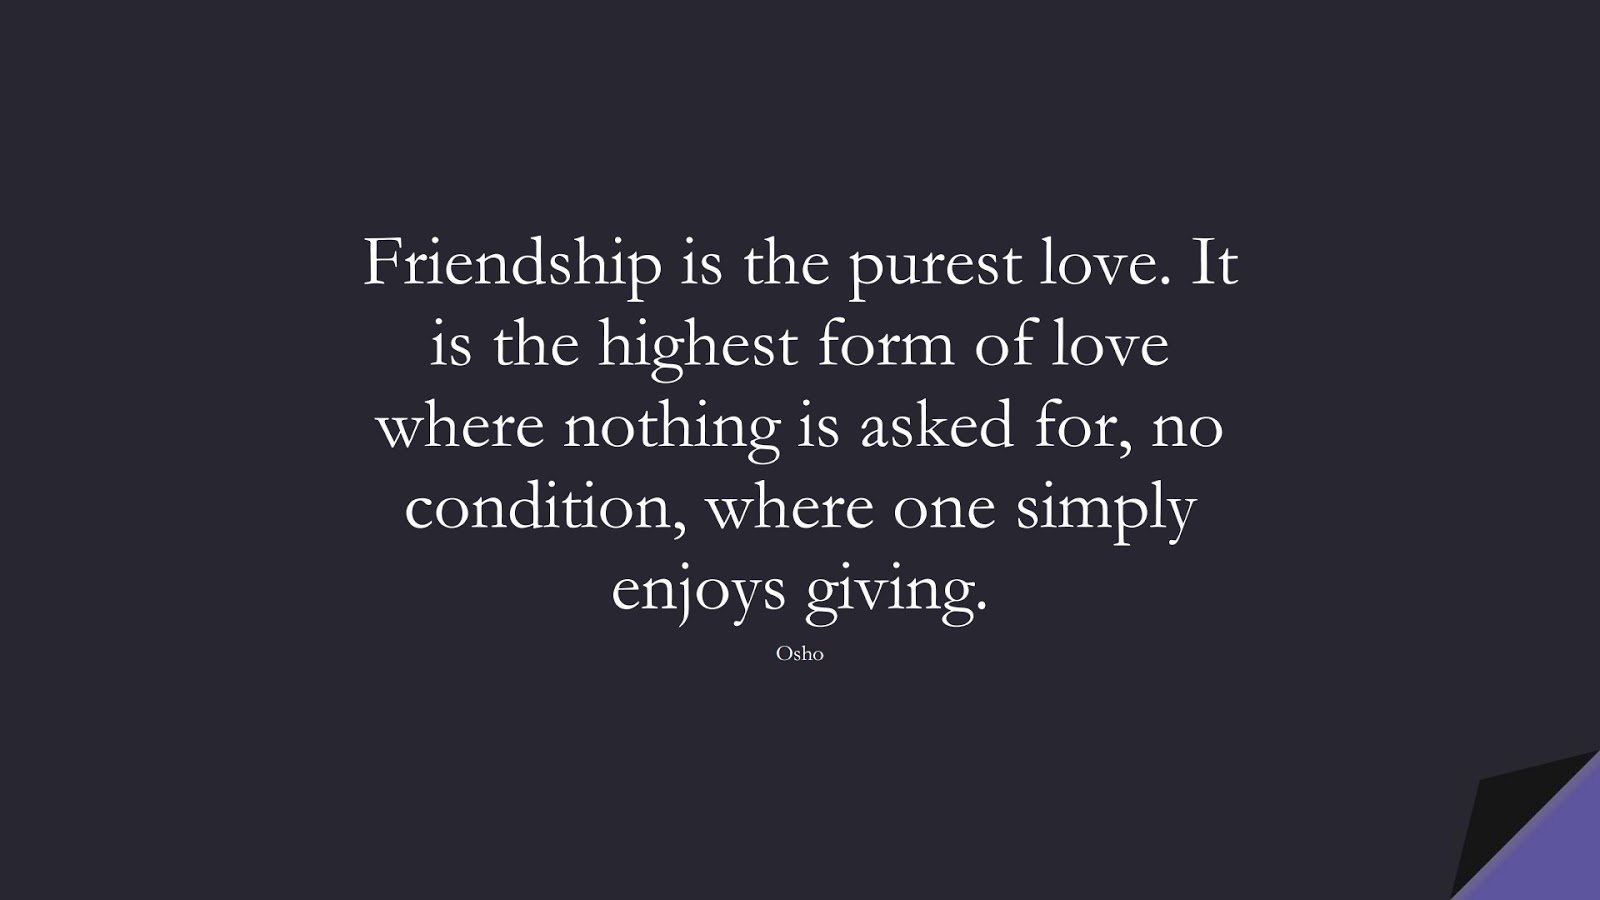 Friendship is the purest love. It is the highest form of love where nothing is asked for, no condition, where one simply enjoys giving. (Osho);  #LoveQuotes